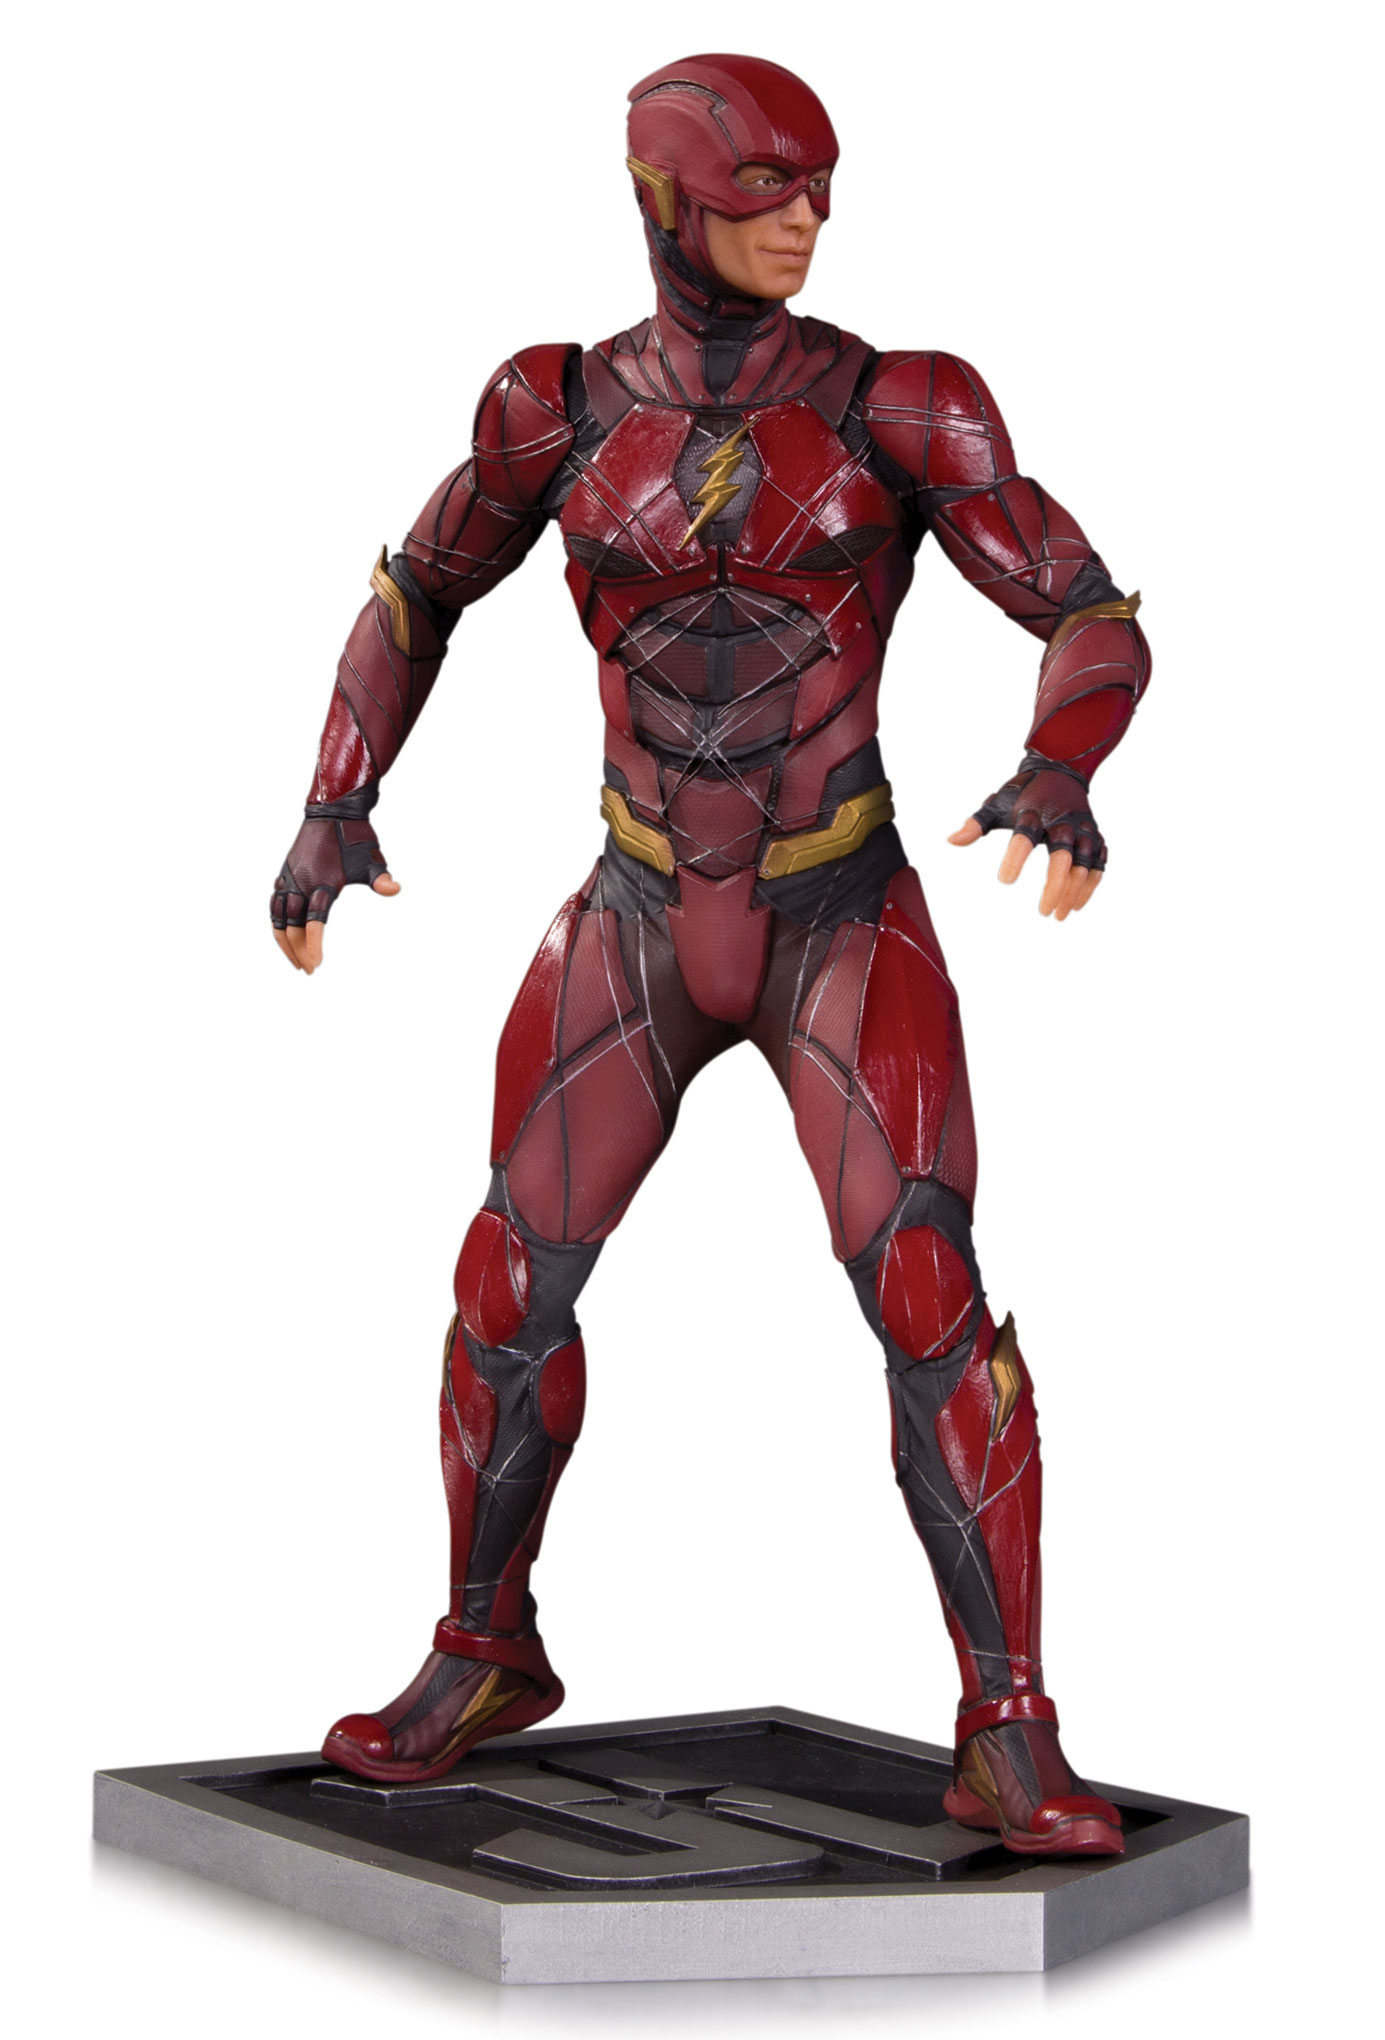 ab96ef368b Home/Shop/DC Comics. Justice League Movie Statue The Flash 32 cm